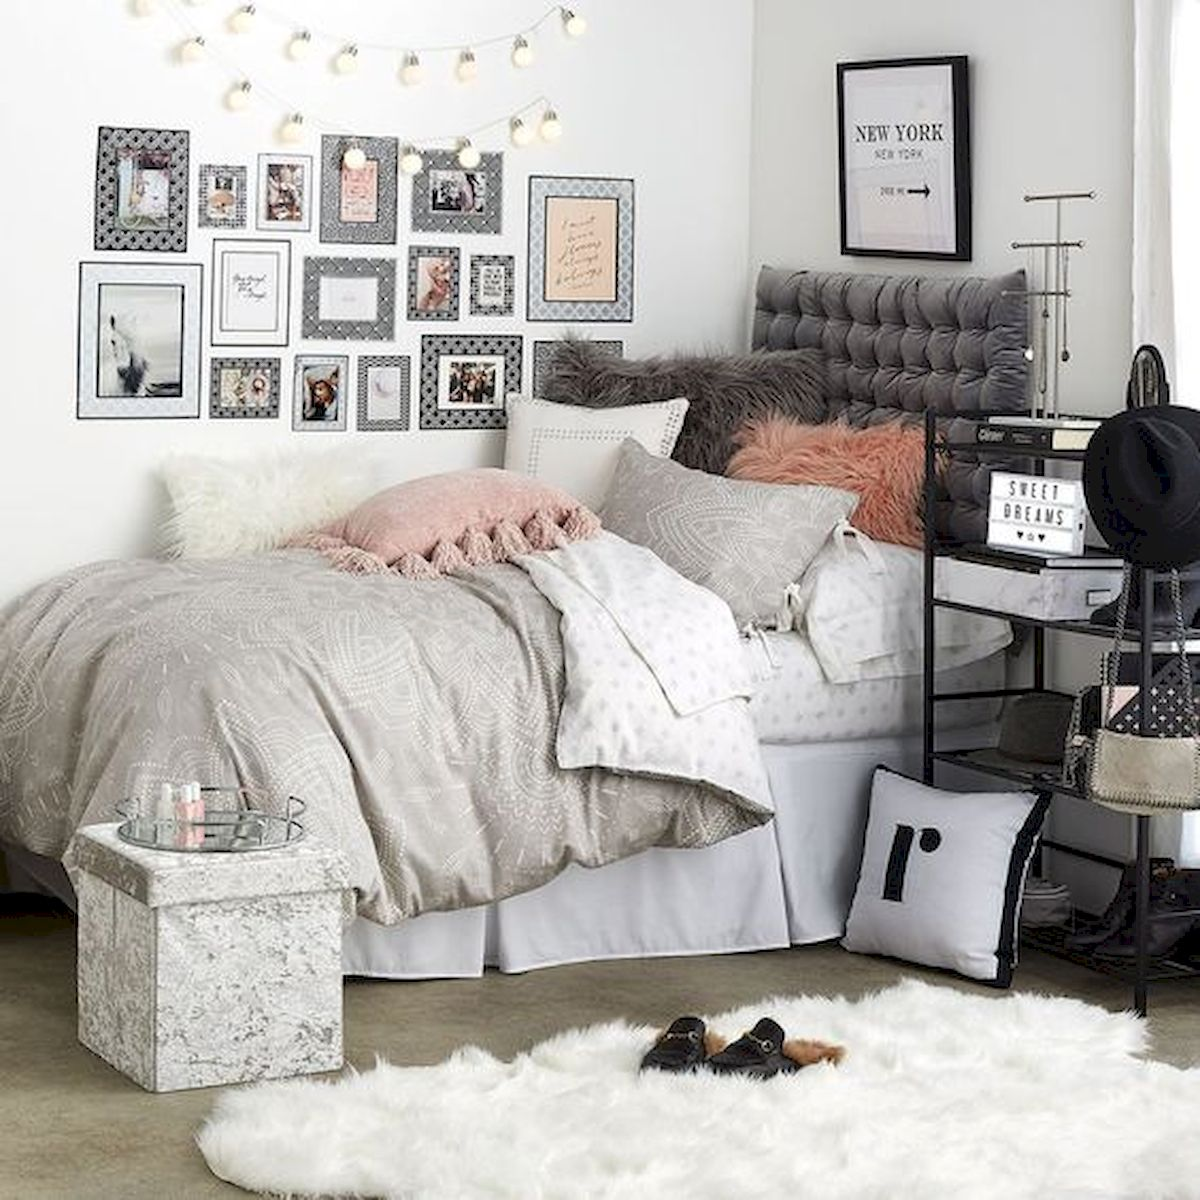 33 Awesome College Bedroom Decor Ideas And Remodel (30)